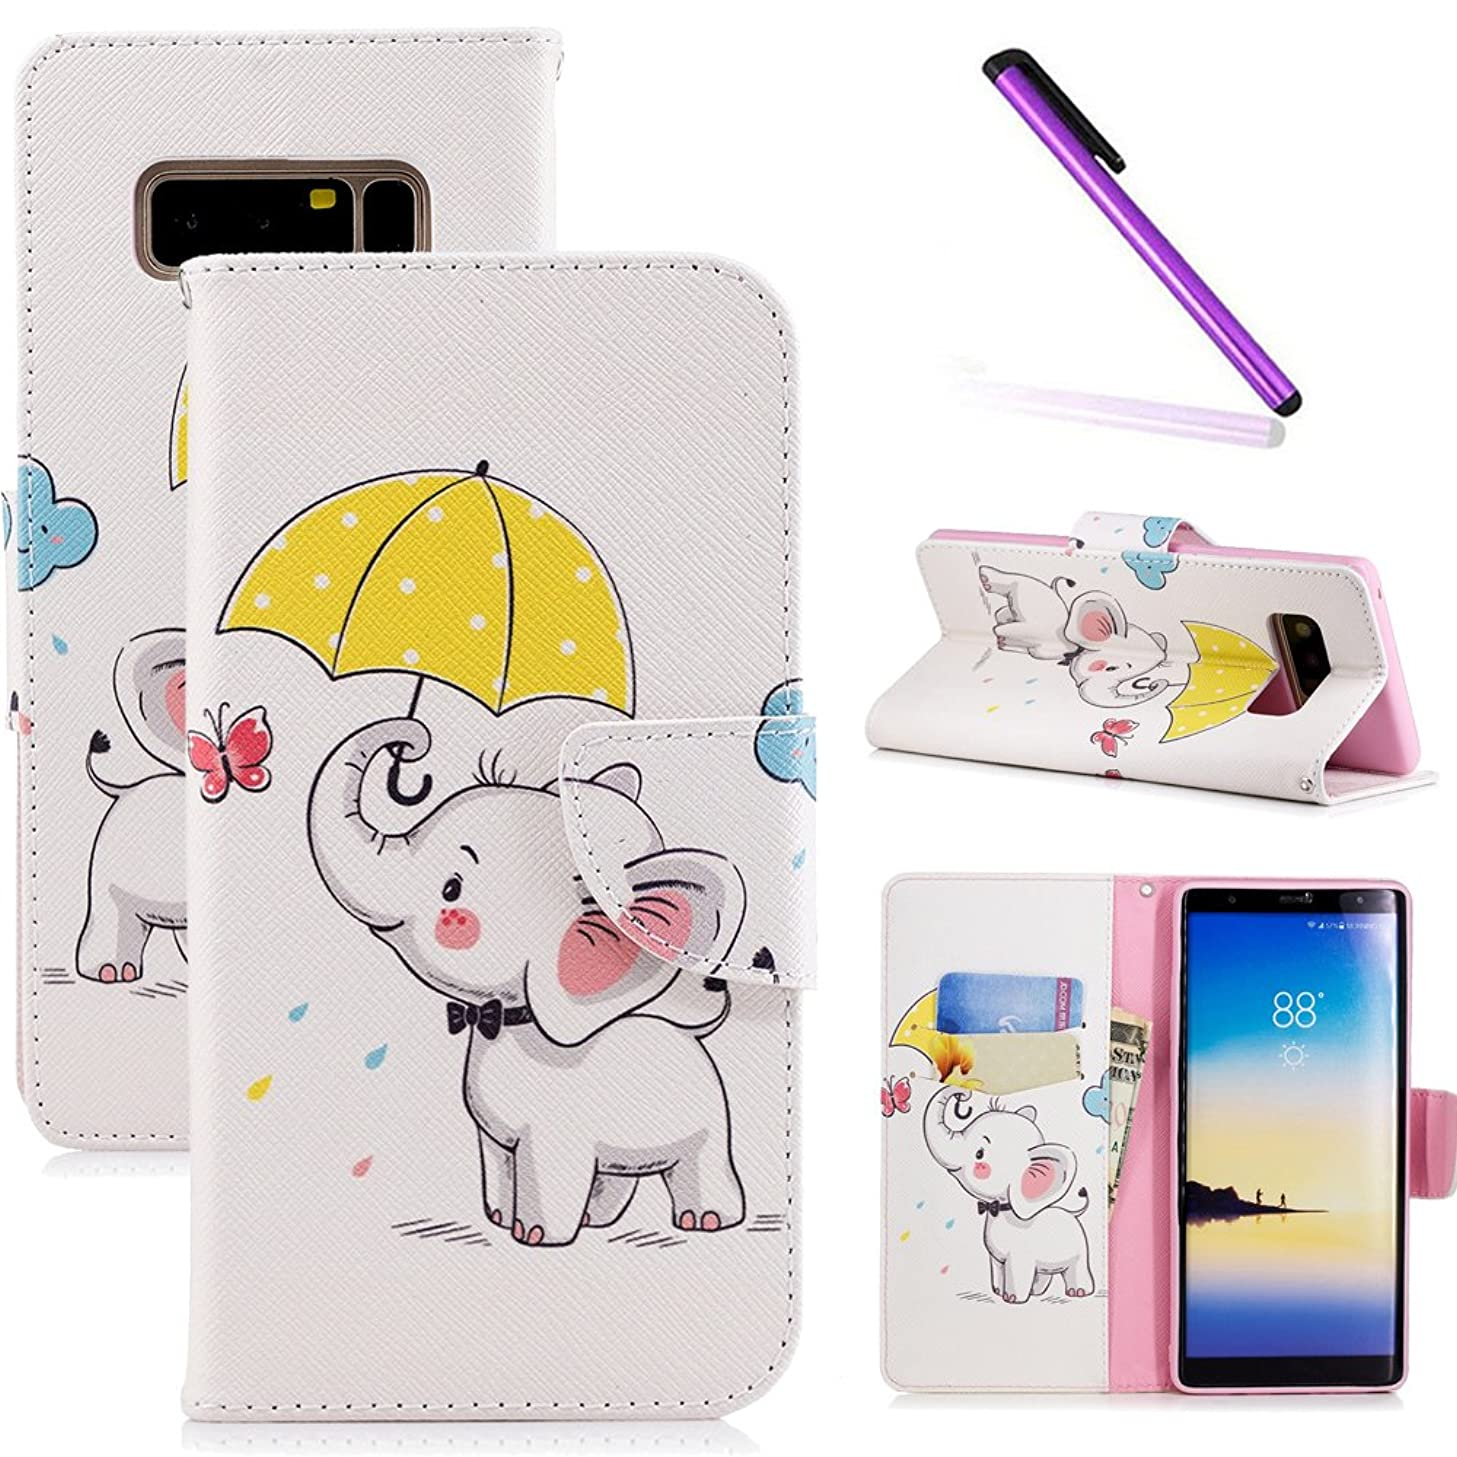 LEECOCO Samsung Note 8 Case Fancy Printing Floral Wallet Case Card Cash Holder Slots PU Leather Folio Flip Kickstand Protective Slim Case Cover Samsung Galaxy Note 8 Umbrella Dumbo BF